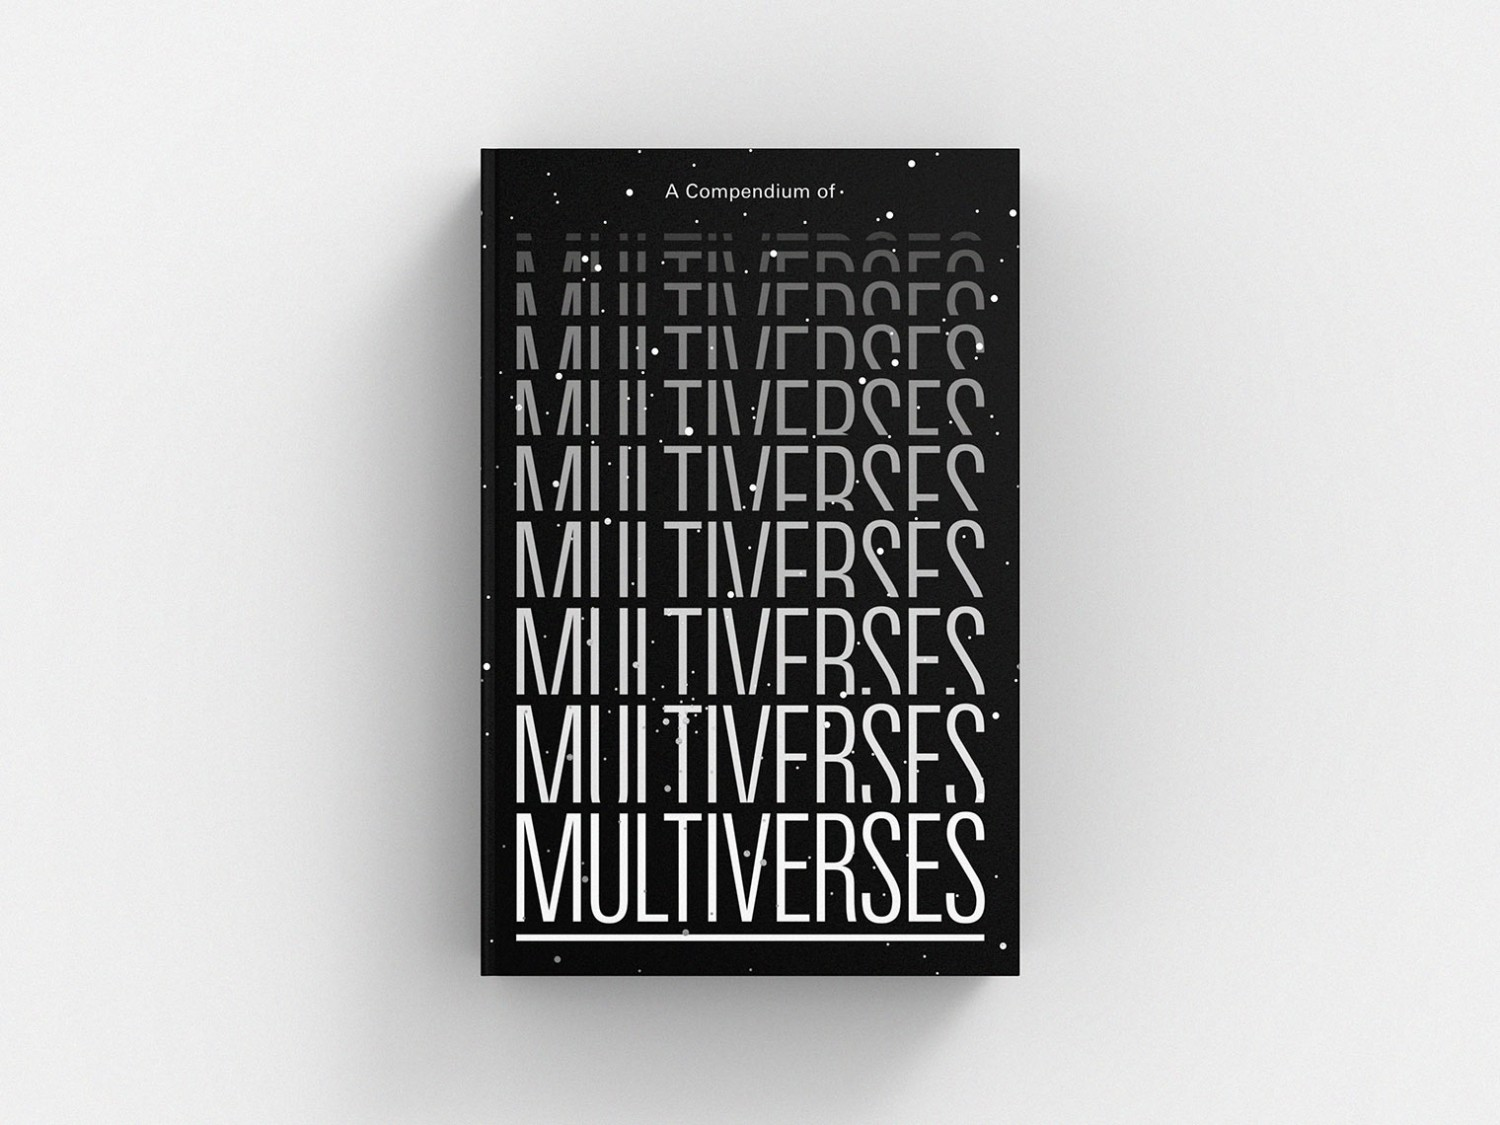 A Compendium of Multiverses